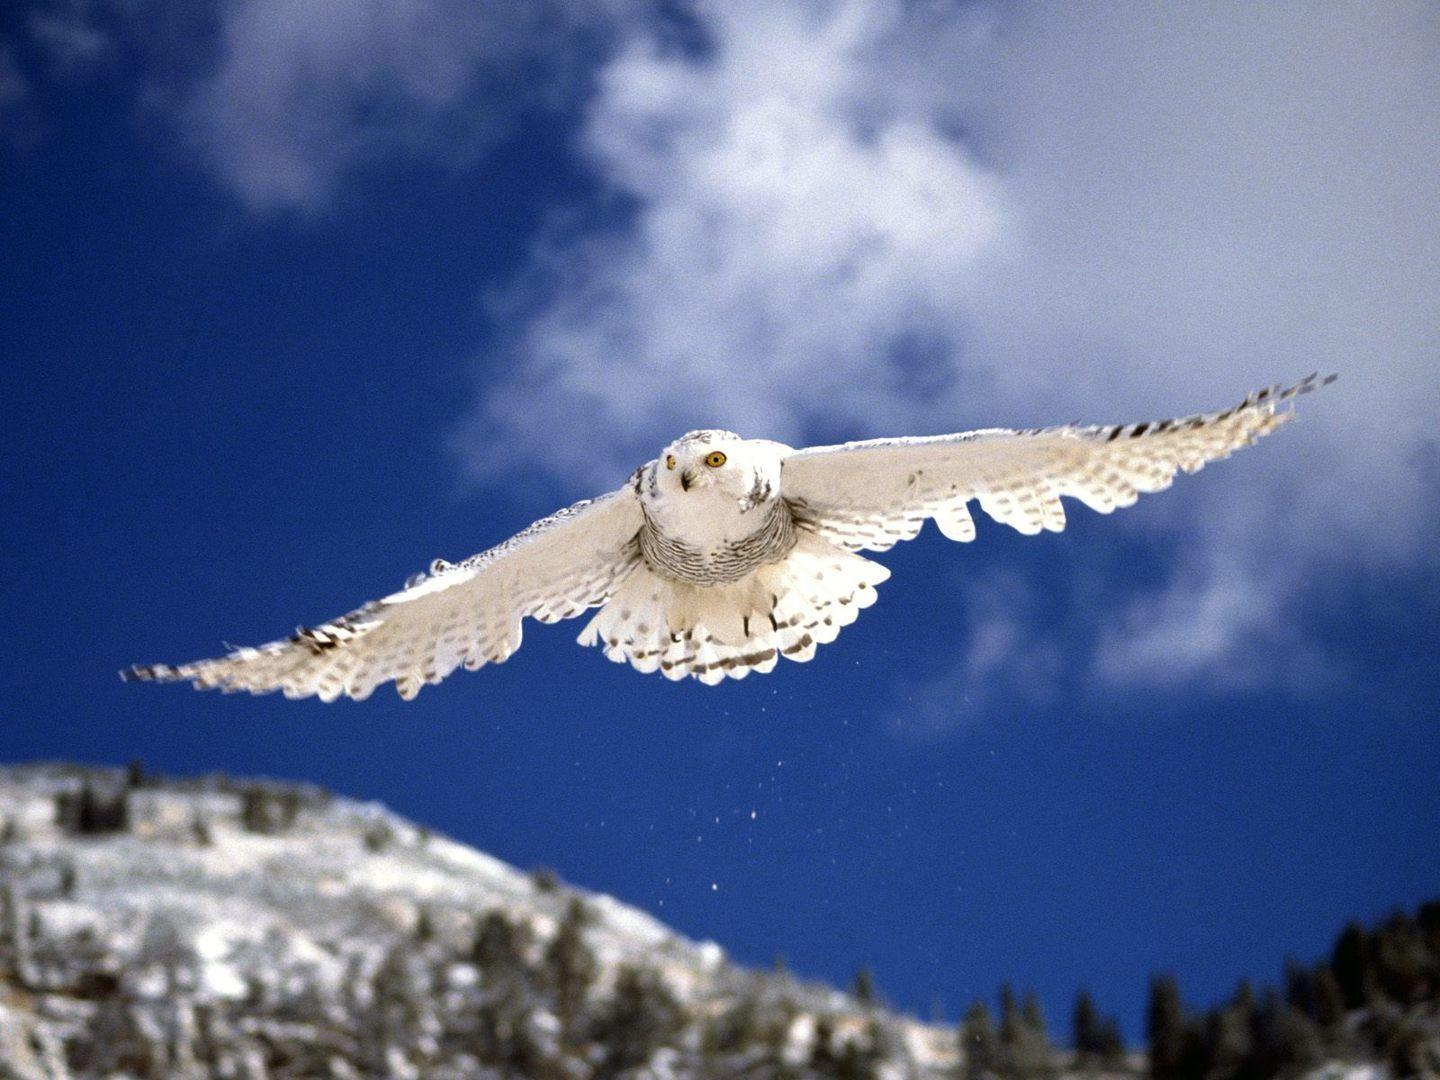 snowy owl Wallpaper HD Wallpaper | WALLPAPERS | Pinterest | Owl ...